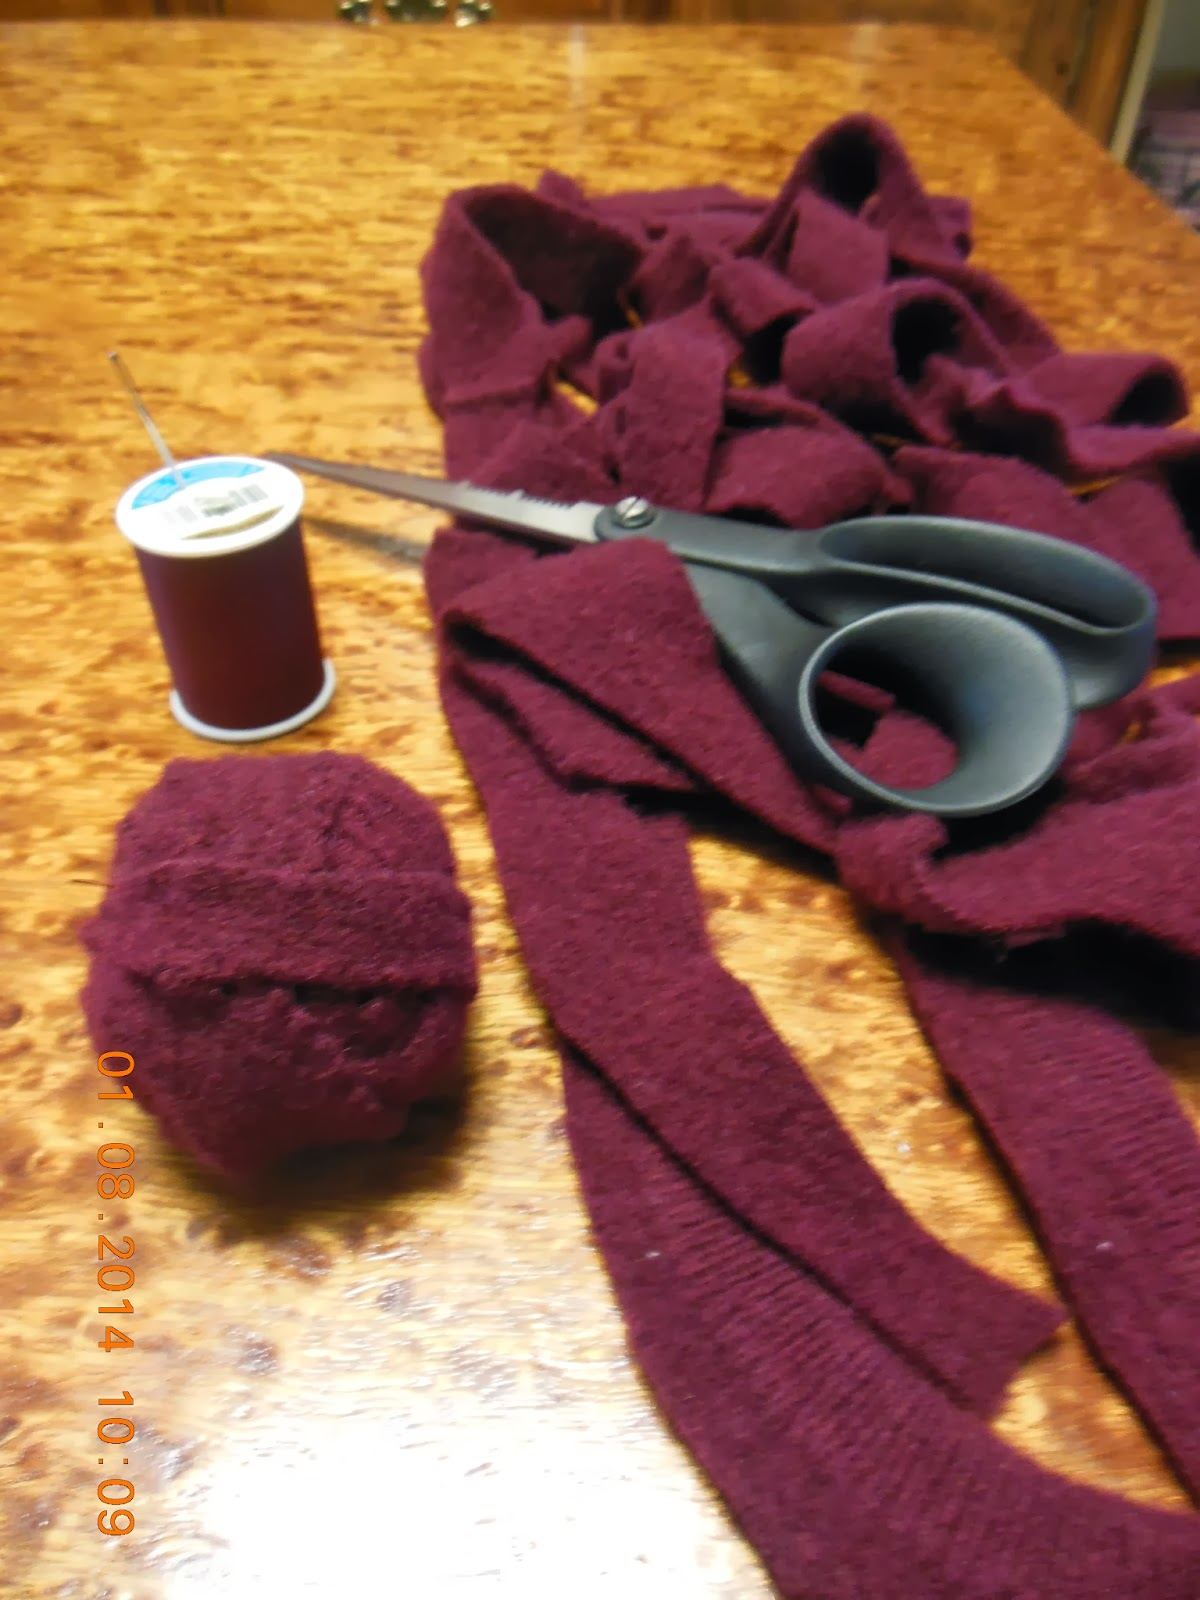 How to make woolen dryer balls, from a re-purposed sweater.